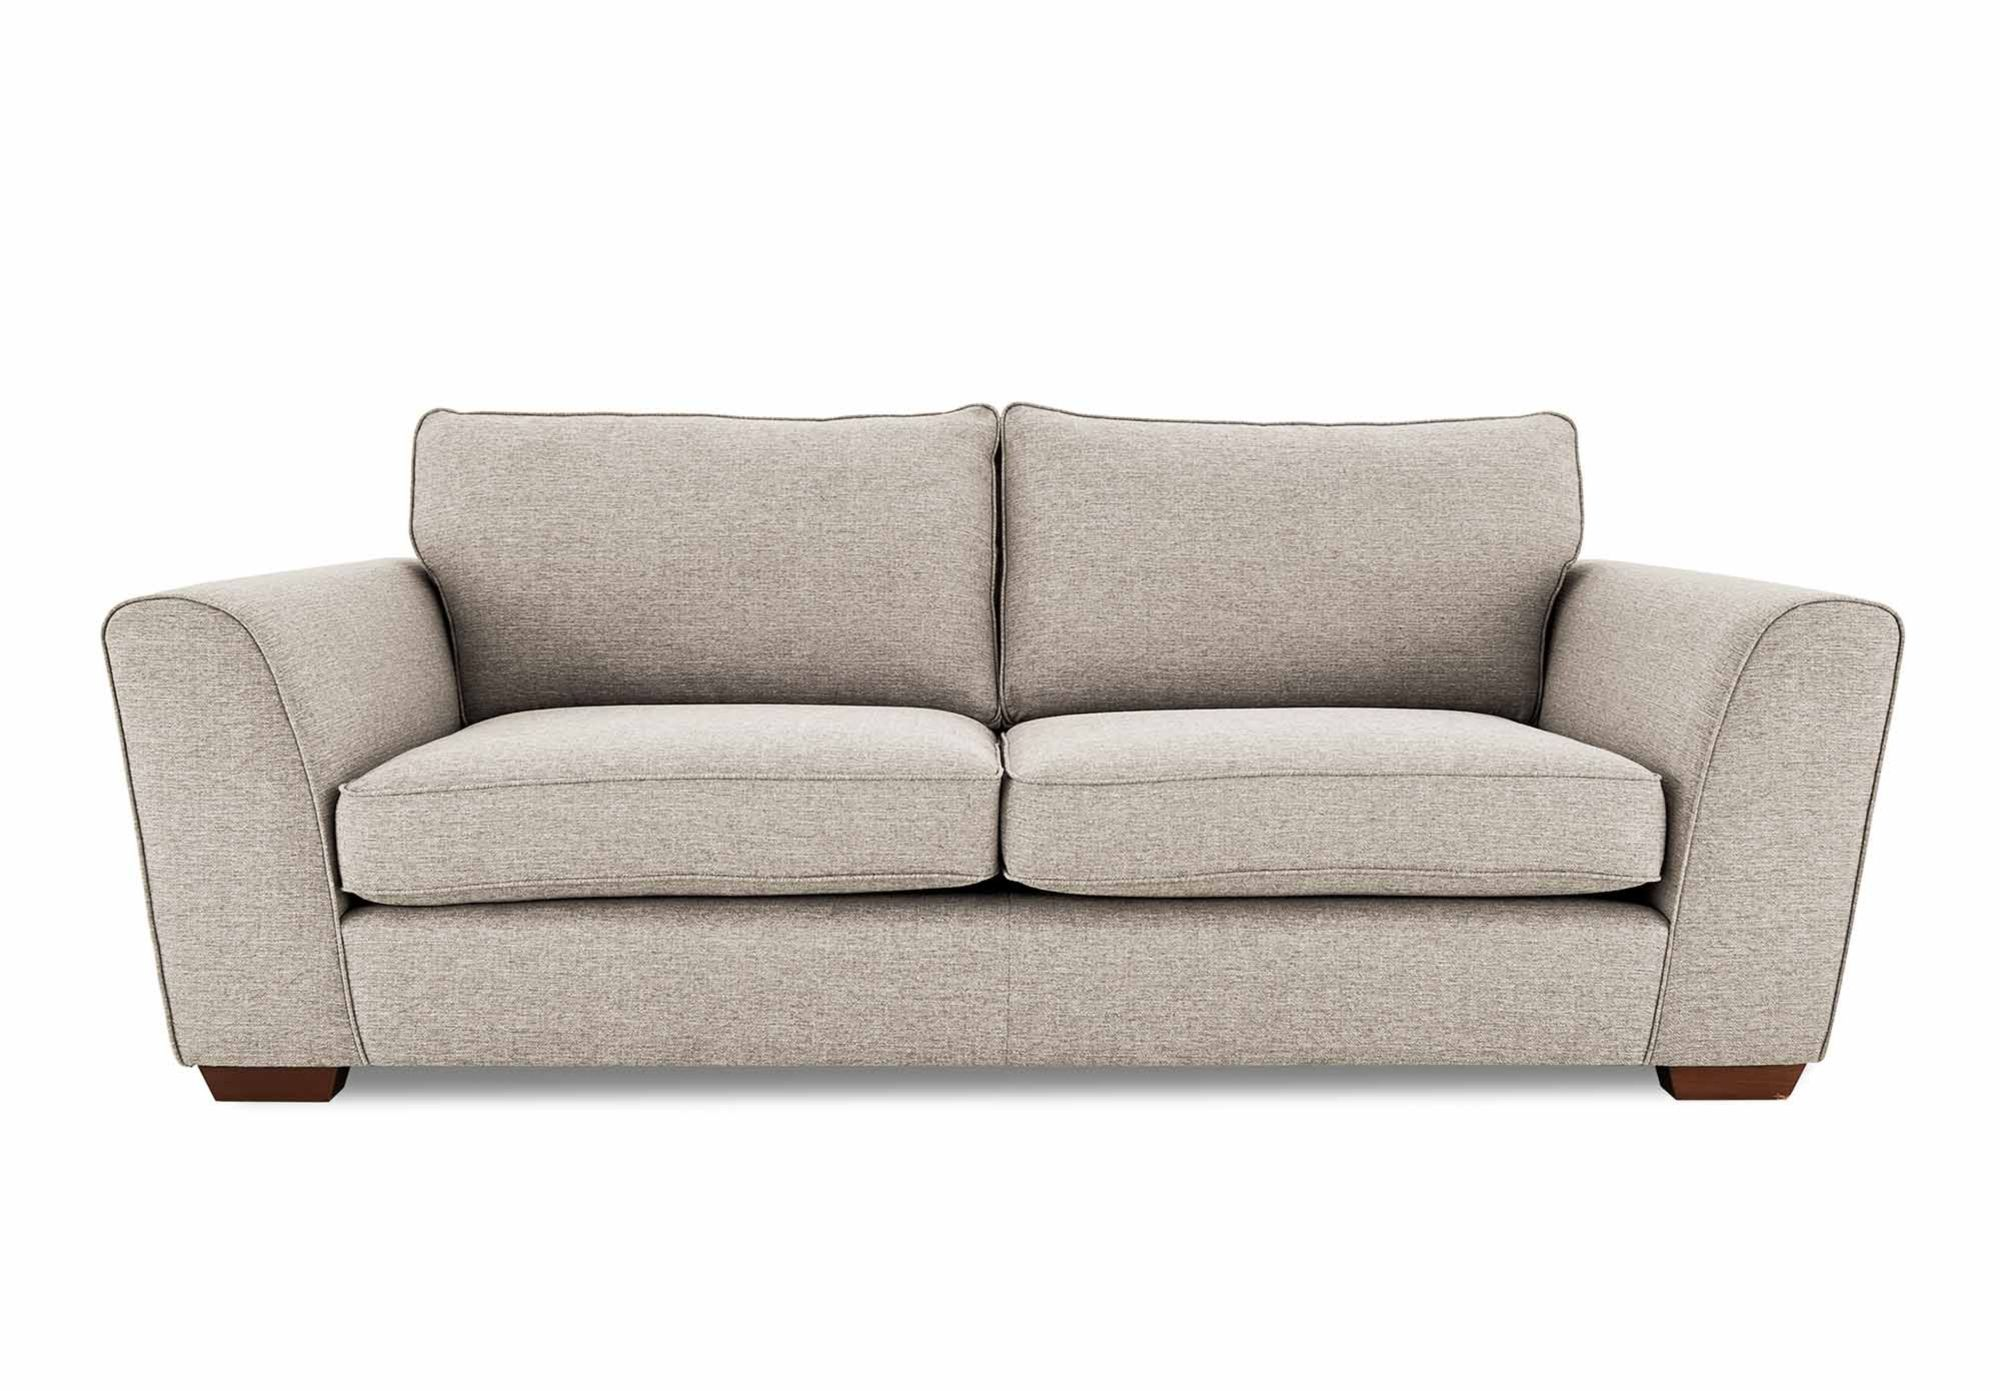 Furniture Village Hartford Sofa The Oxford Street Extra Large 3 Seater Sofa Is Part Of The High